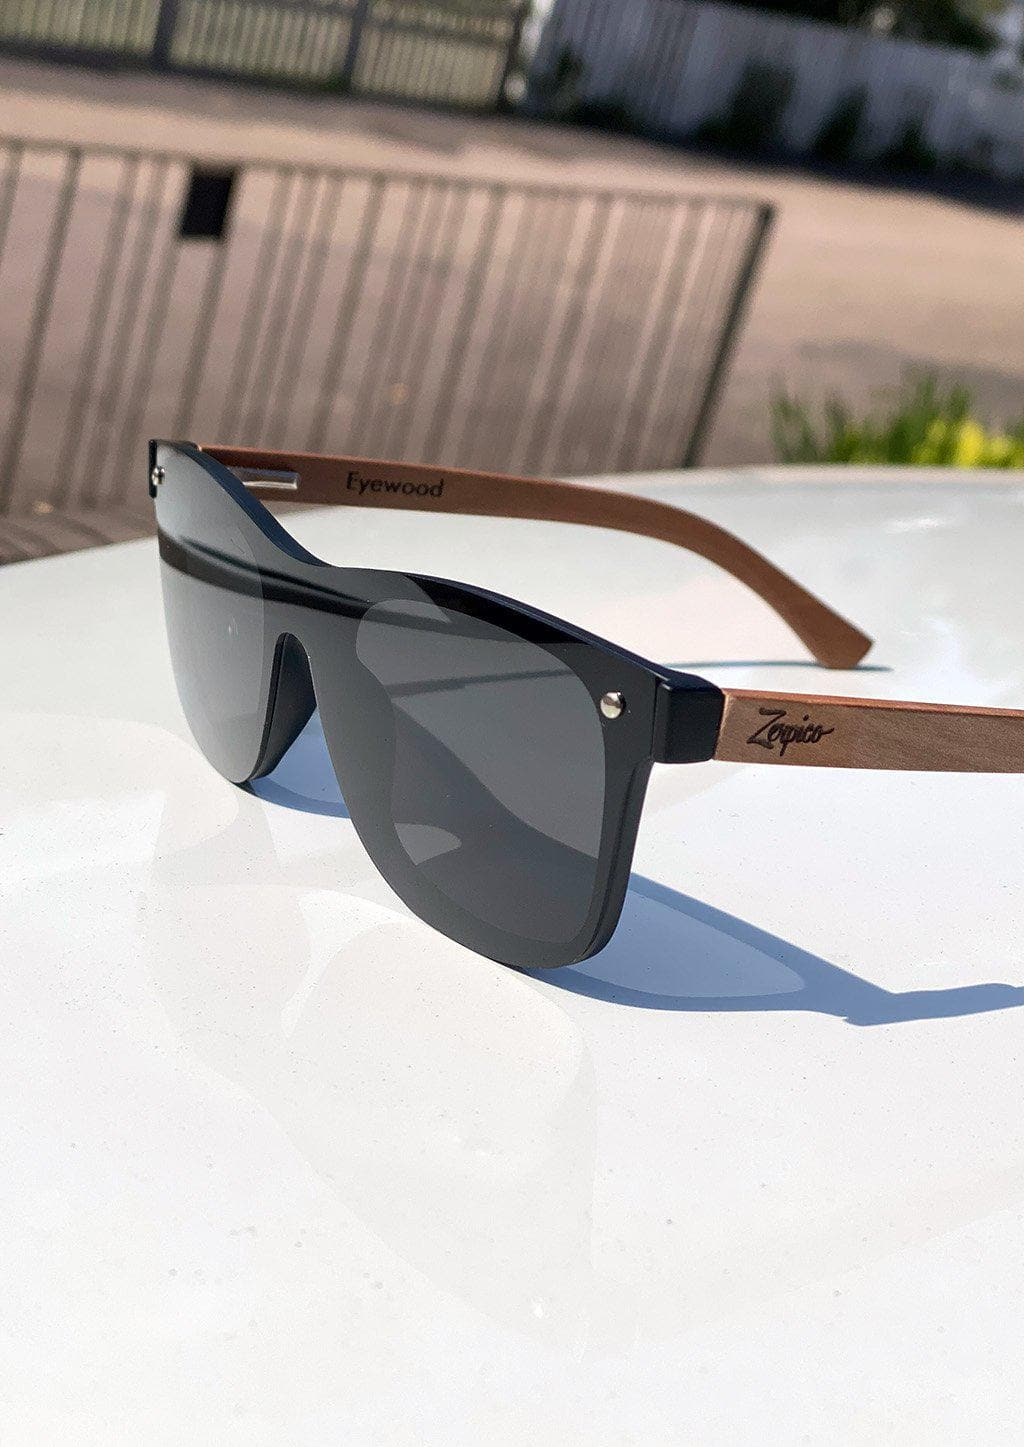 Eyewood tomorrow is our modern cool take on classic models. This is Taurus with black lenses. Nice wooden sunglasses. On White car with details.